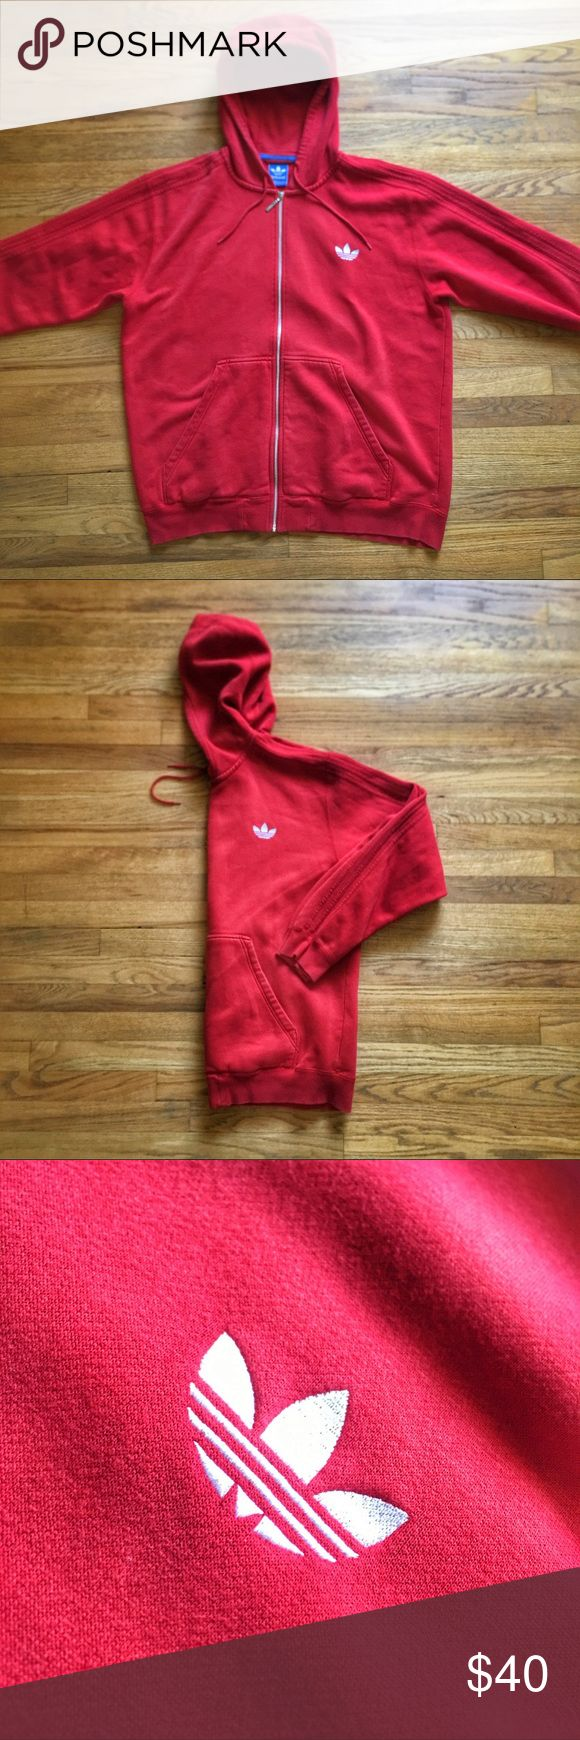 Adidas Big Label Track Zip-up Hoodie PRICE IS FIRM - OFFERS NOT ACCEPTED.  Adidas Big Label Track Zip-up Hoodie.  Size XXL.  Pre-owned in excellent condition.  Big embroidered logo in front.  Colors are red, white and blue.  See something you like but it's not here next week? We sell in store and across multiple platforms, so items go quick! If you're interested, act on it! adidas Sweaters Zip Up